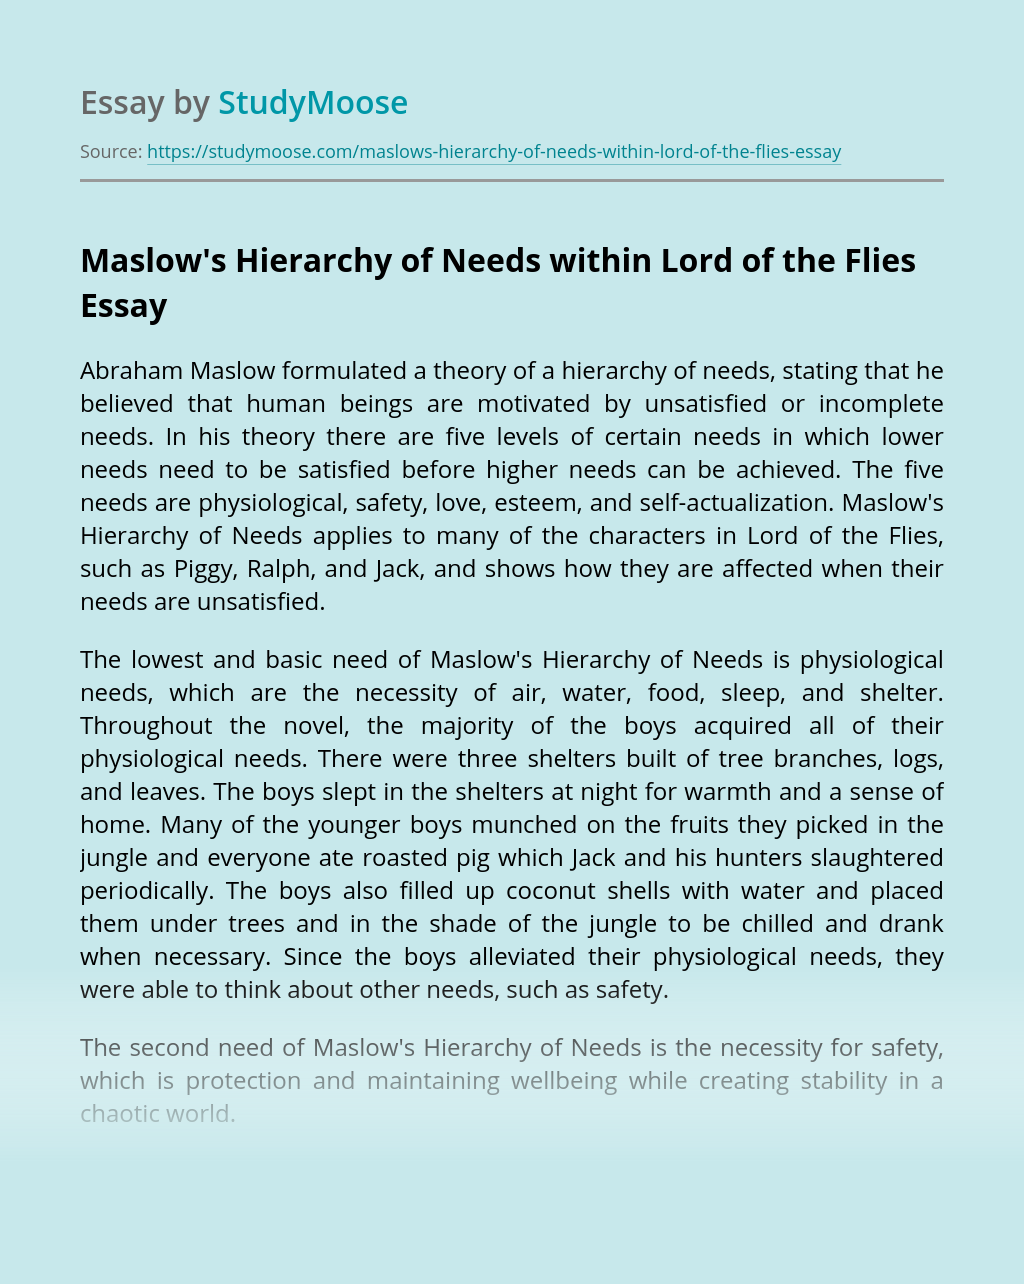 Maslow's Hierarchy of Needs within Lord of the Flies